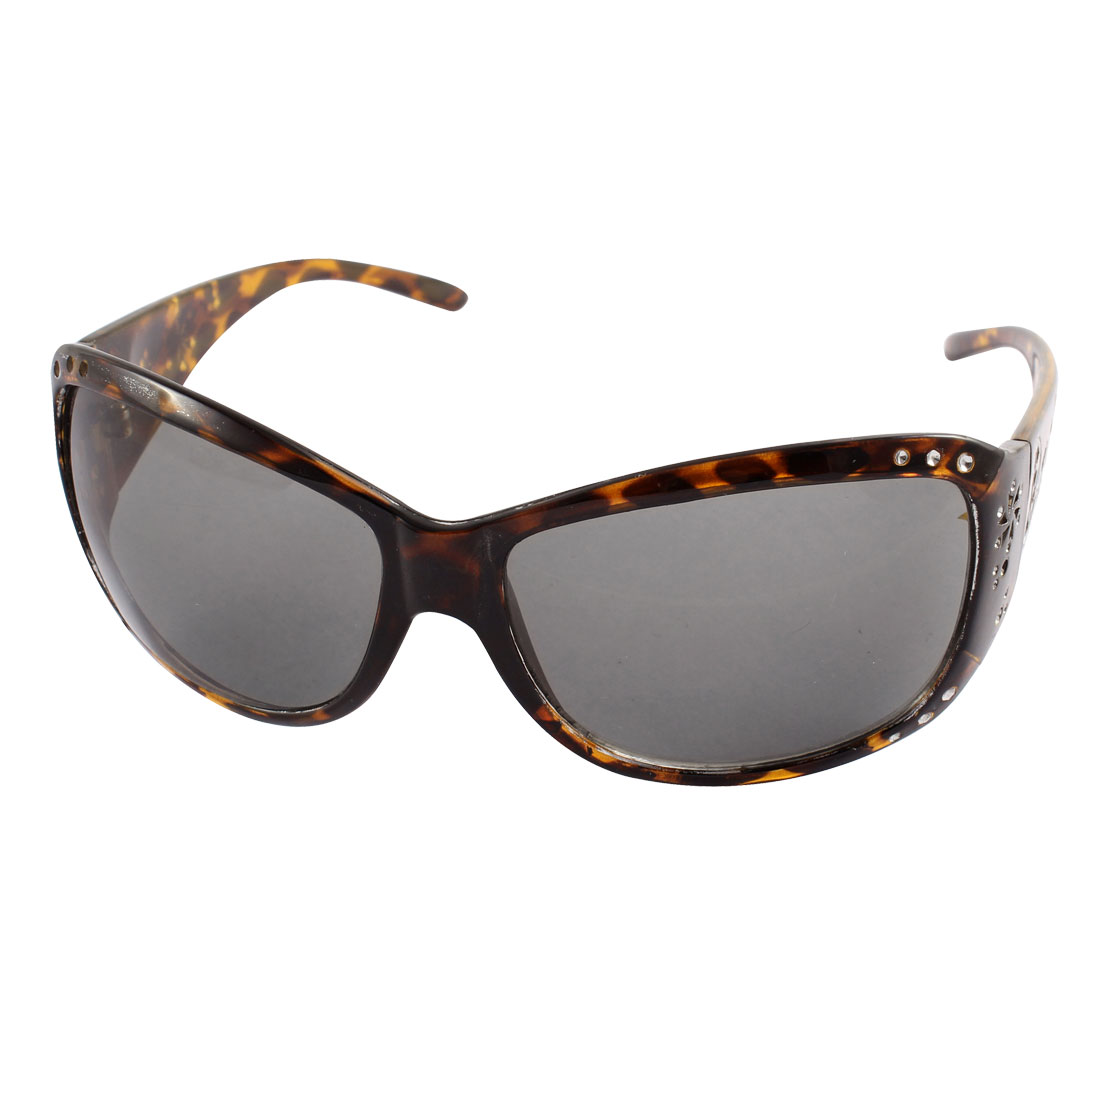 Leopard Print Pattern Rhinestone Inlaid Butterfly Design Full Frame Sunglasses Brown